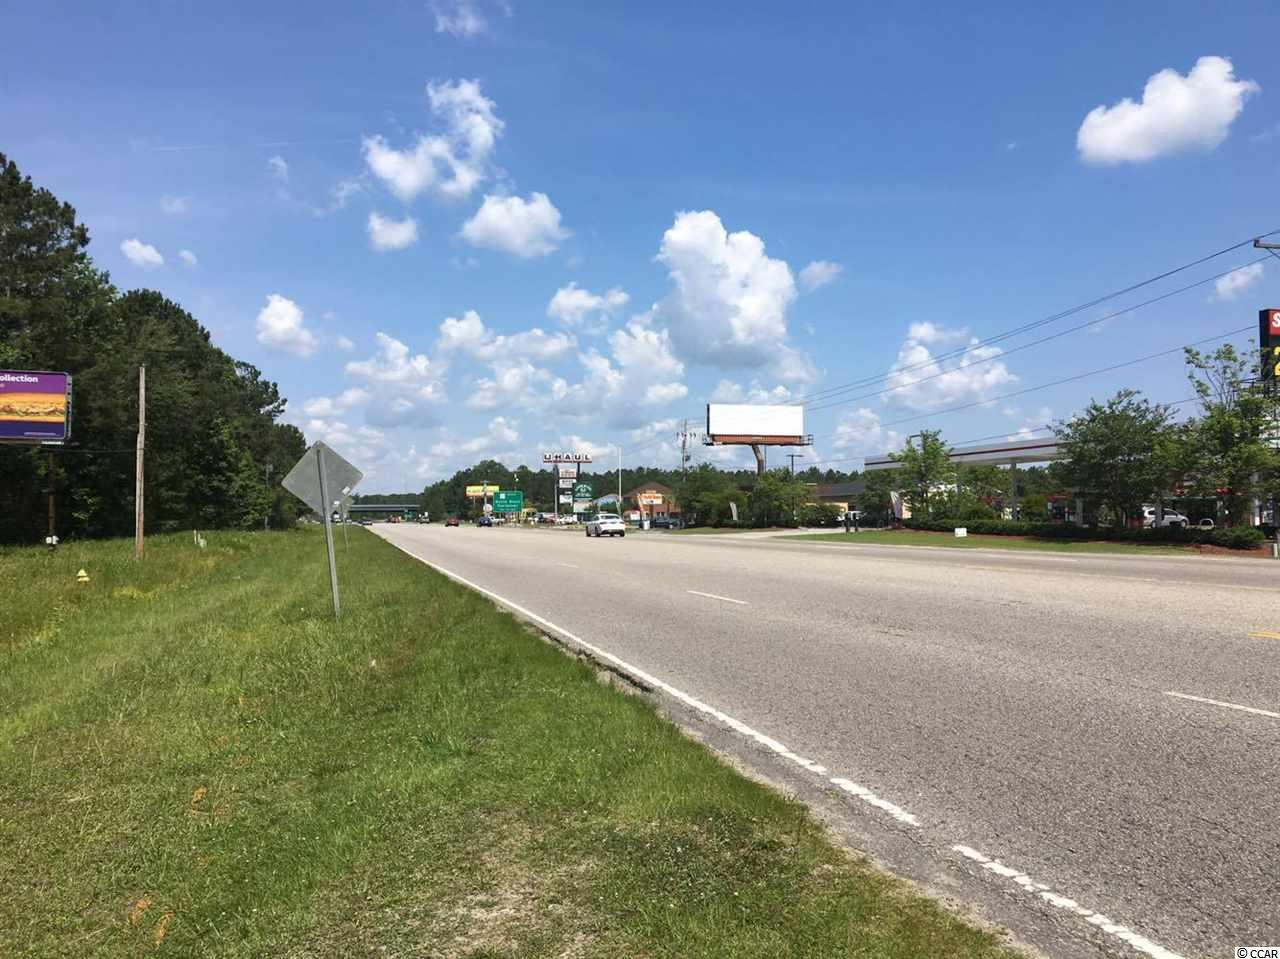 With over 200 feet of direct highway frontage just after the exit from hwy 31 Site is located in one of the busiest hwy in the county. Great area for fast food or retail. Join Food Lion, State farm, Horry County National Bank,at this great commercial location. Acreage is approximate and not guaranteed. Buyer is responsible for verification. price reduced!!